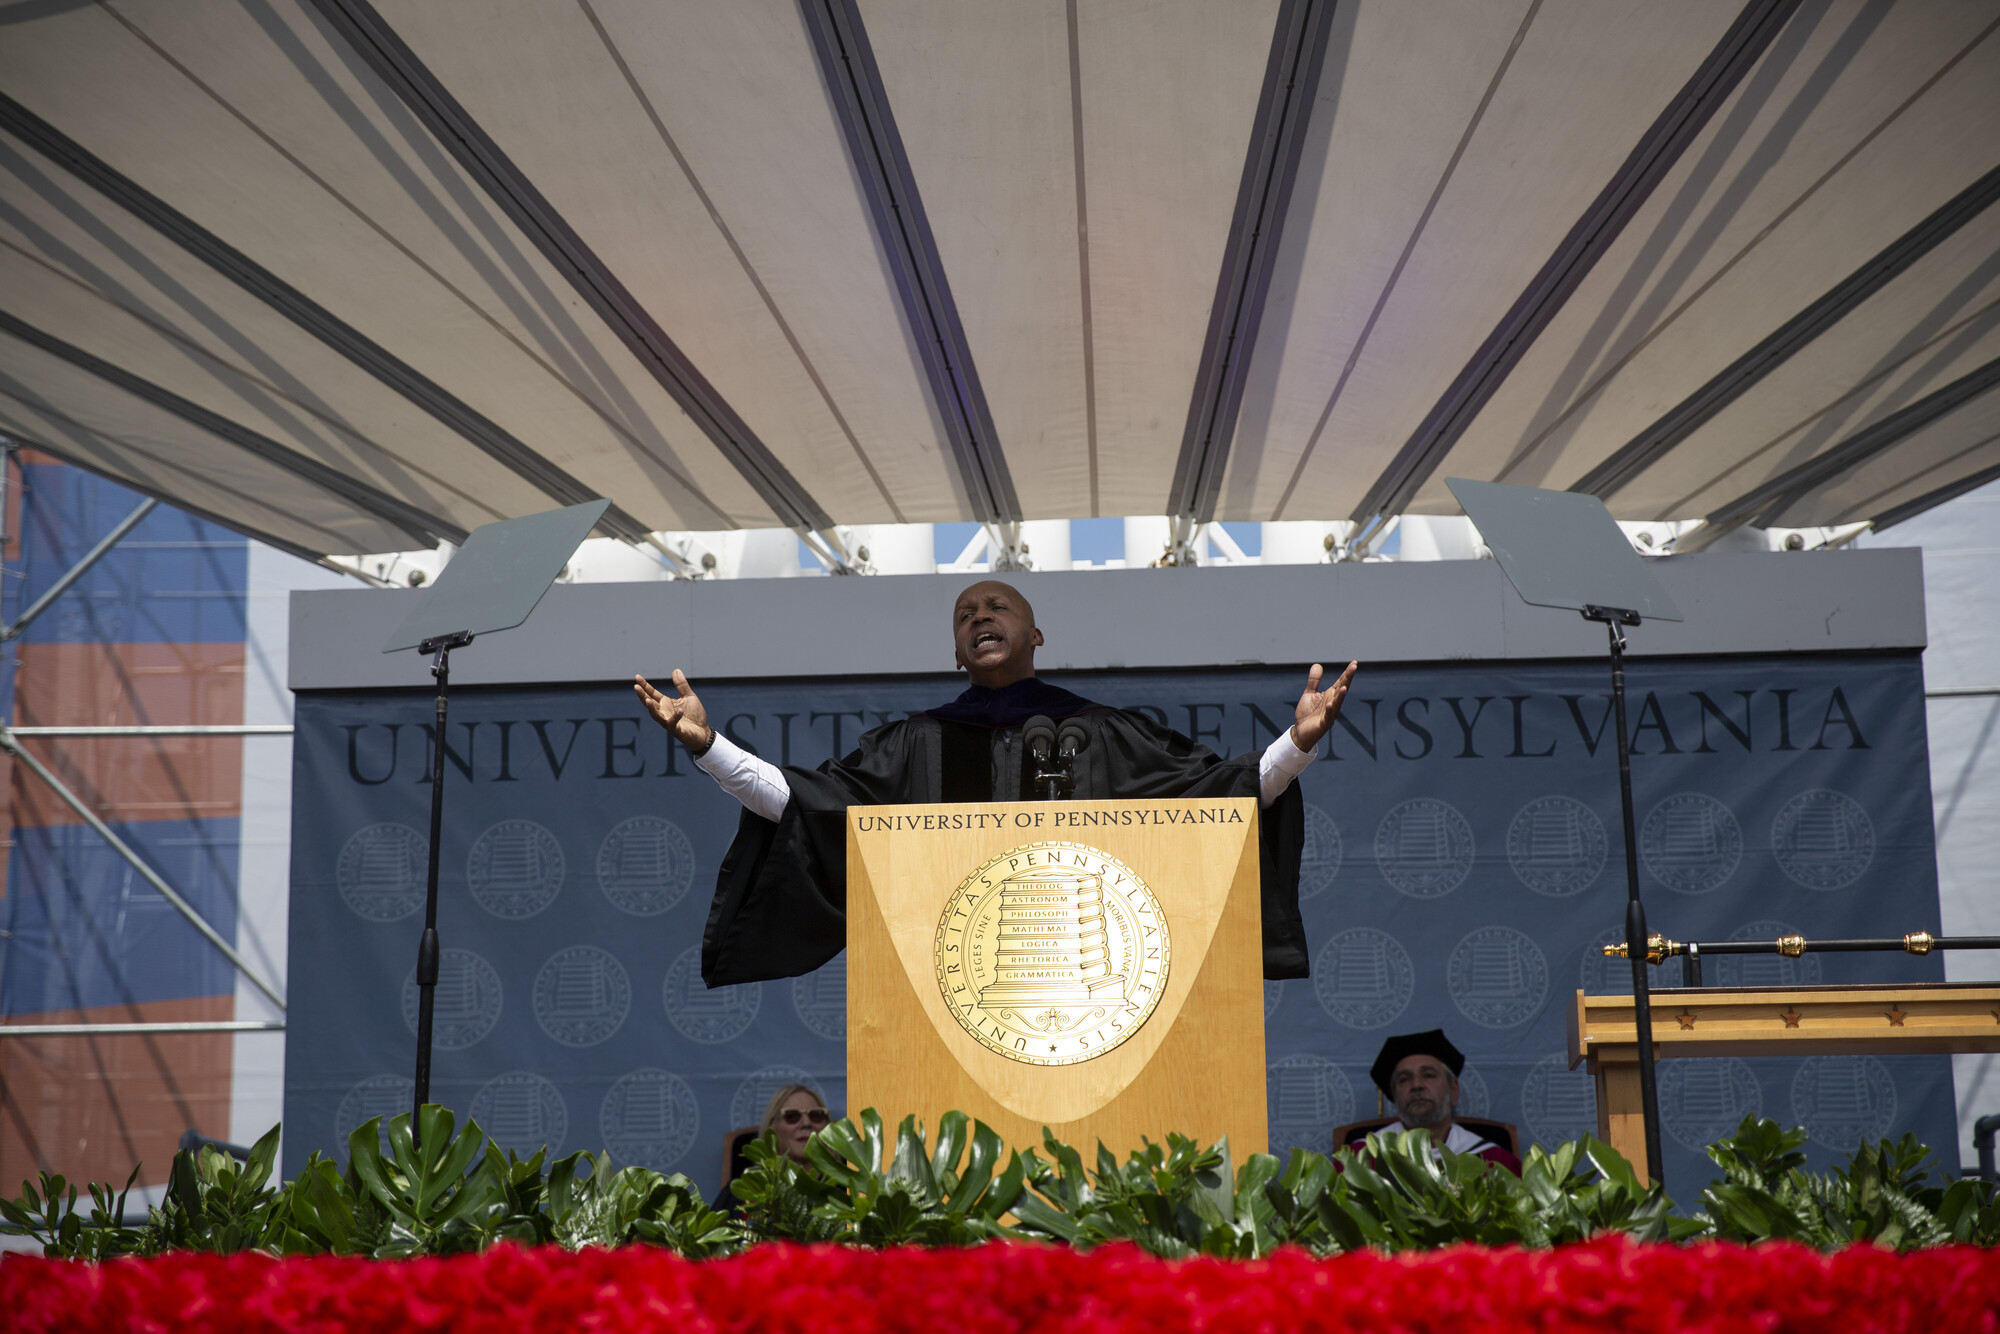 Bryan Stevenson reaches his arms out wide while speaking at a podium on stage at commencement.